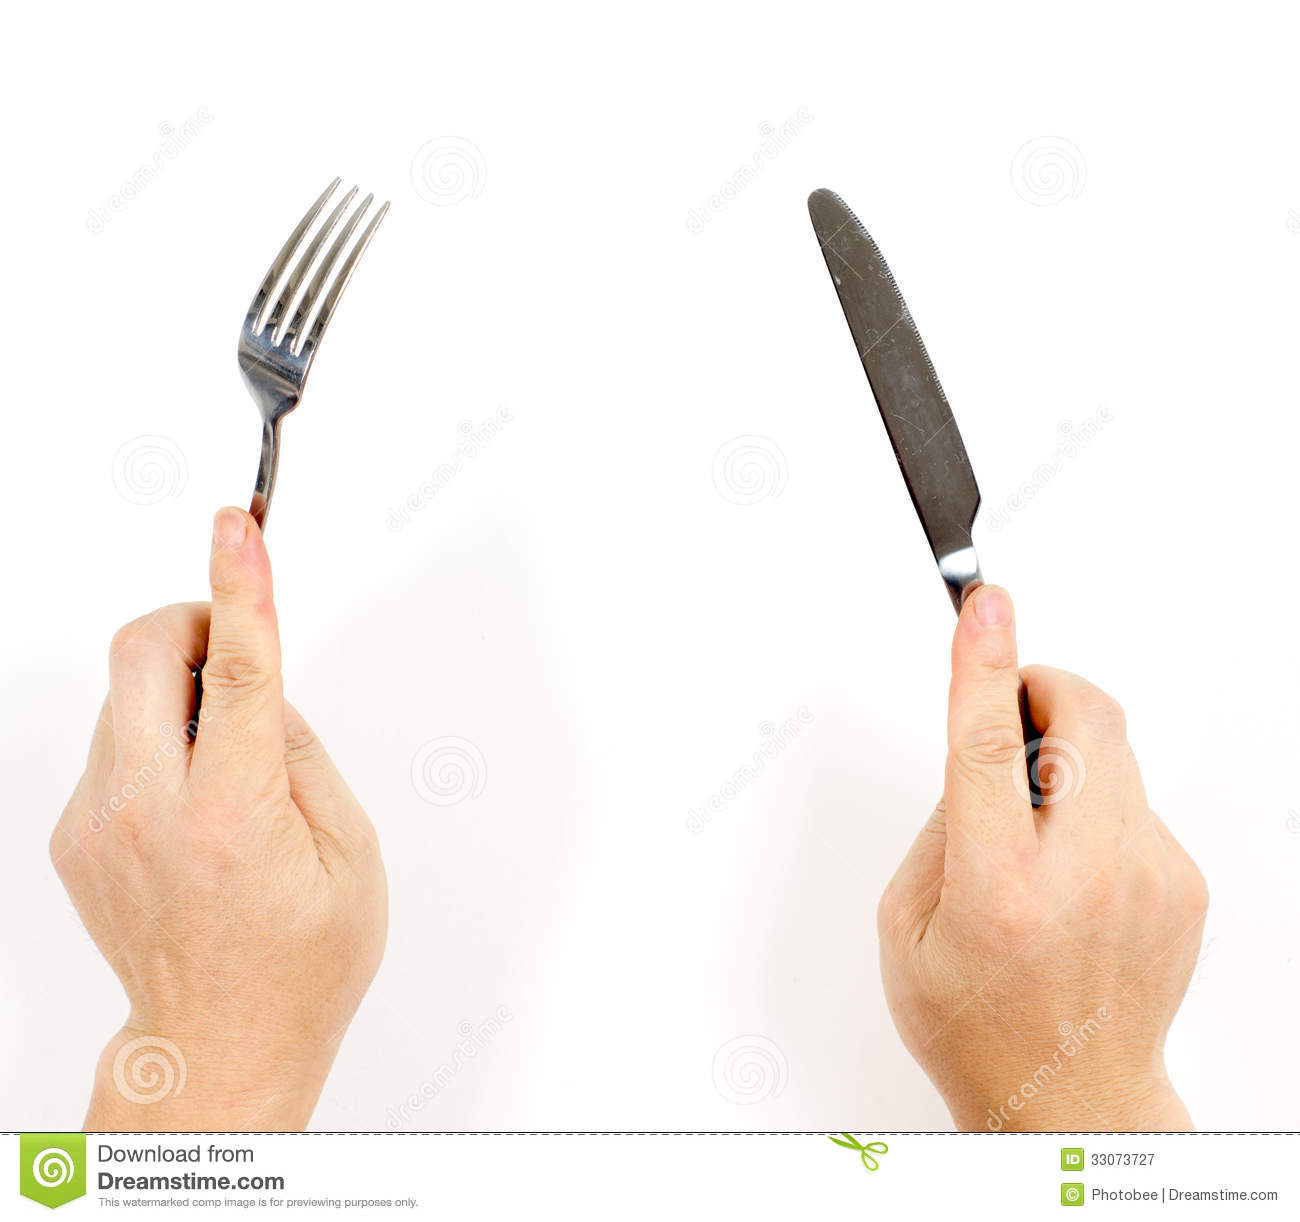 Hands and cutlery